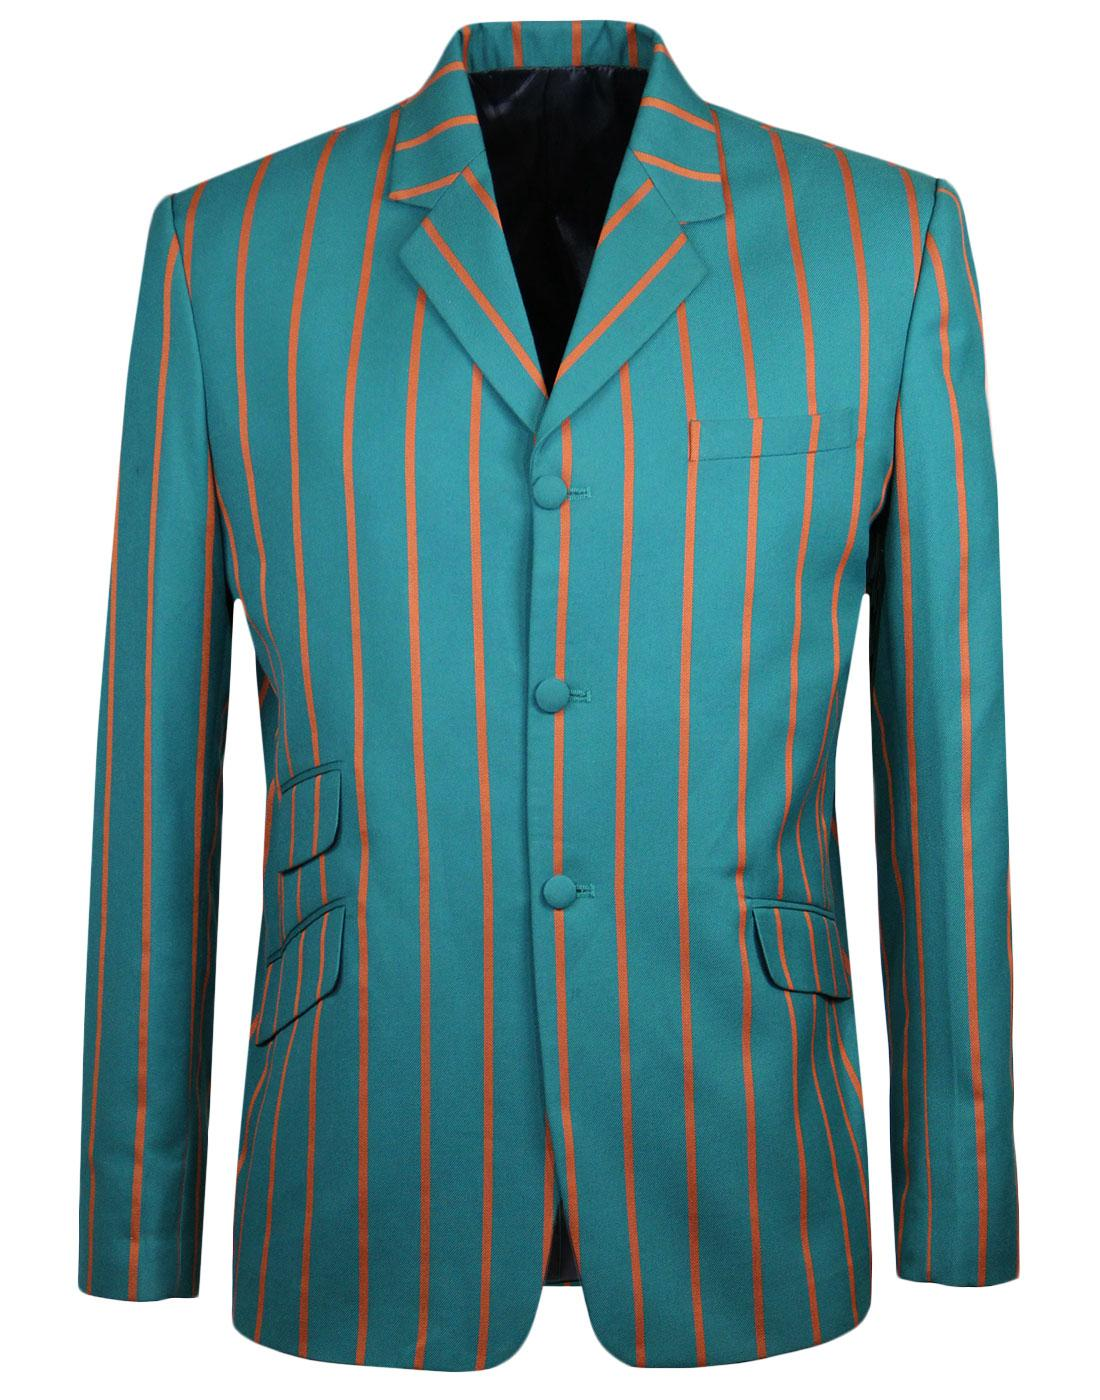 Offbeat MADCAP ENGLAND 60s Mod Boating Blazer TEAL